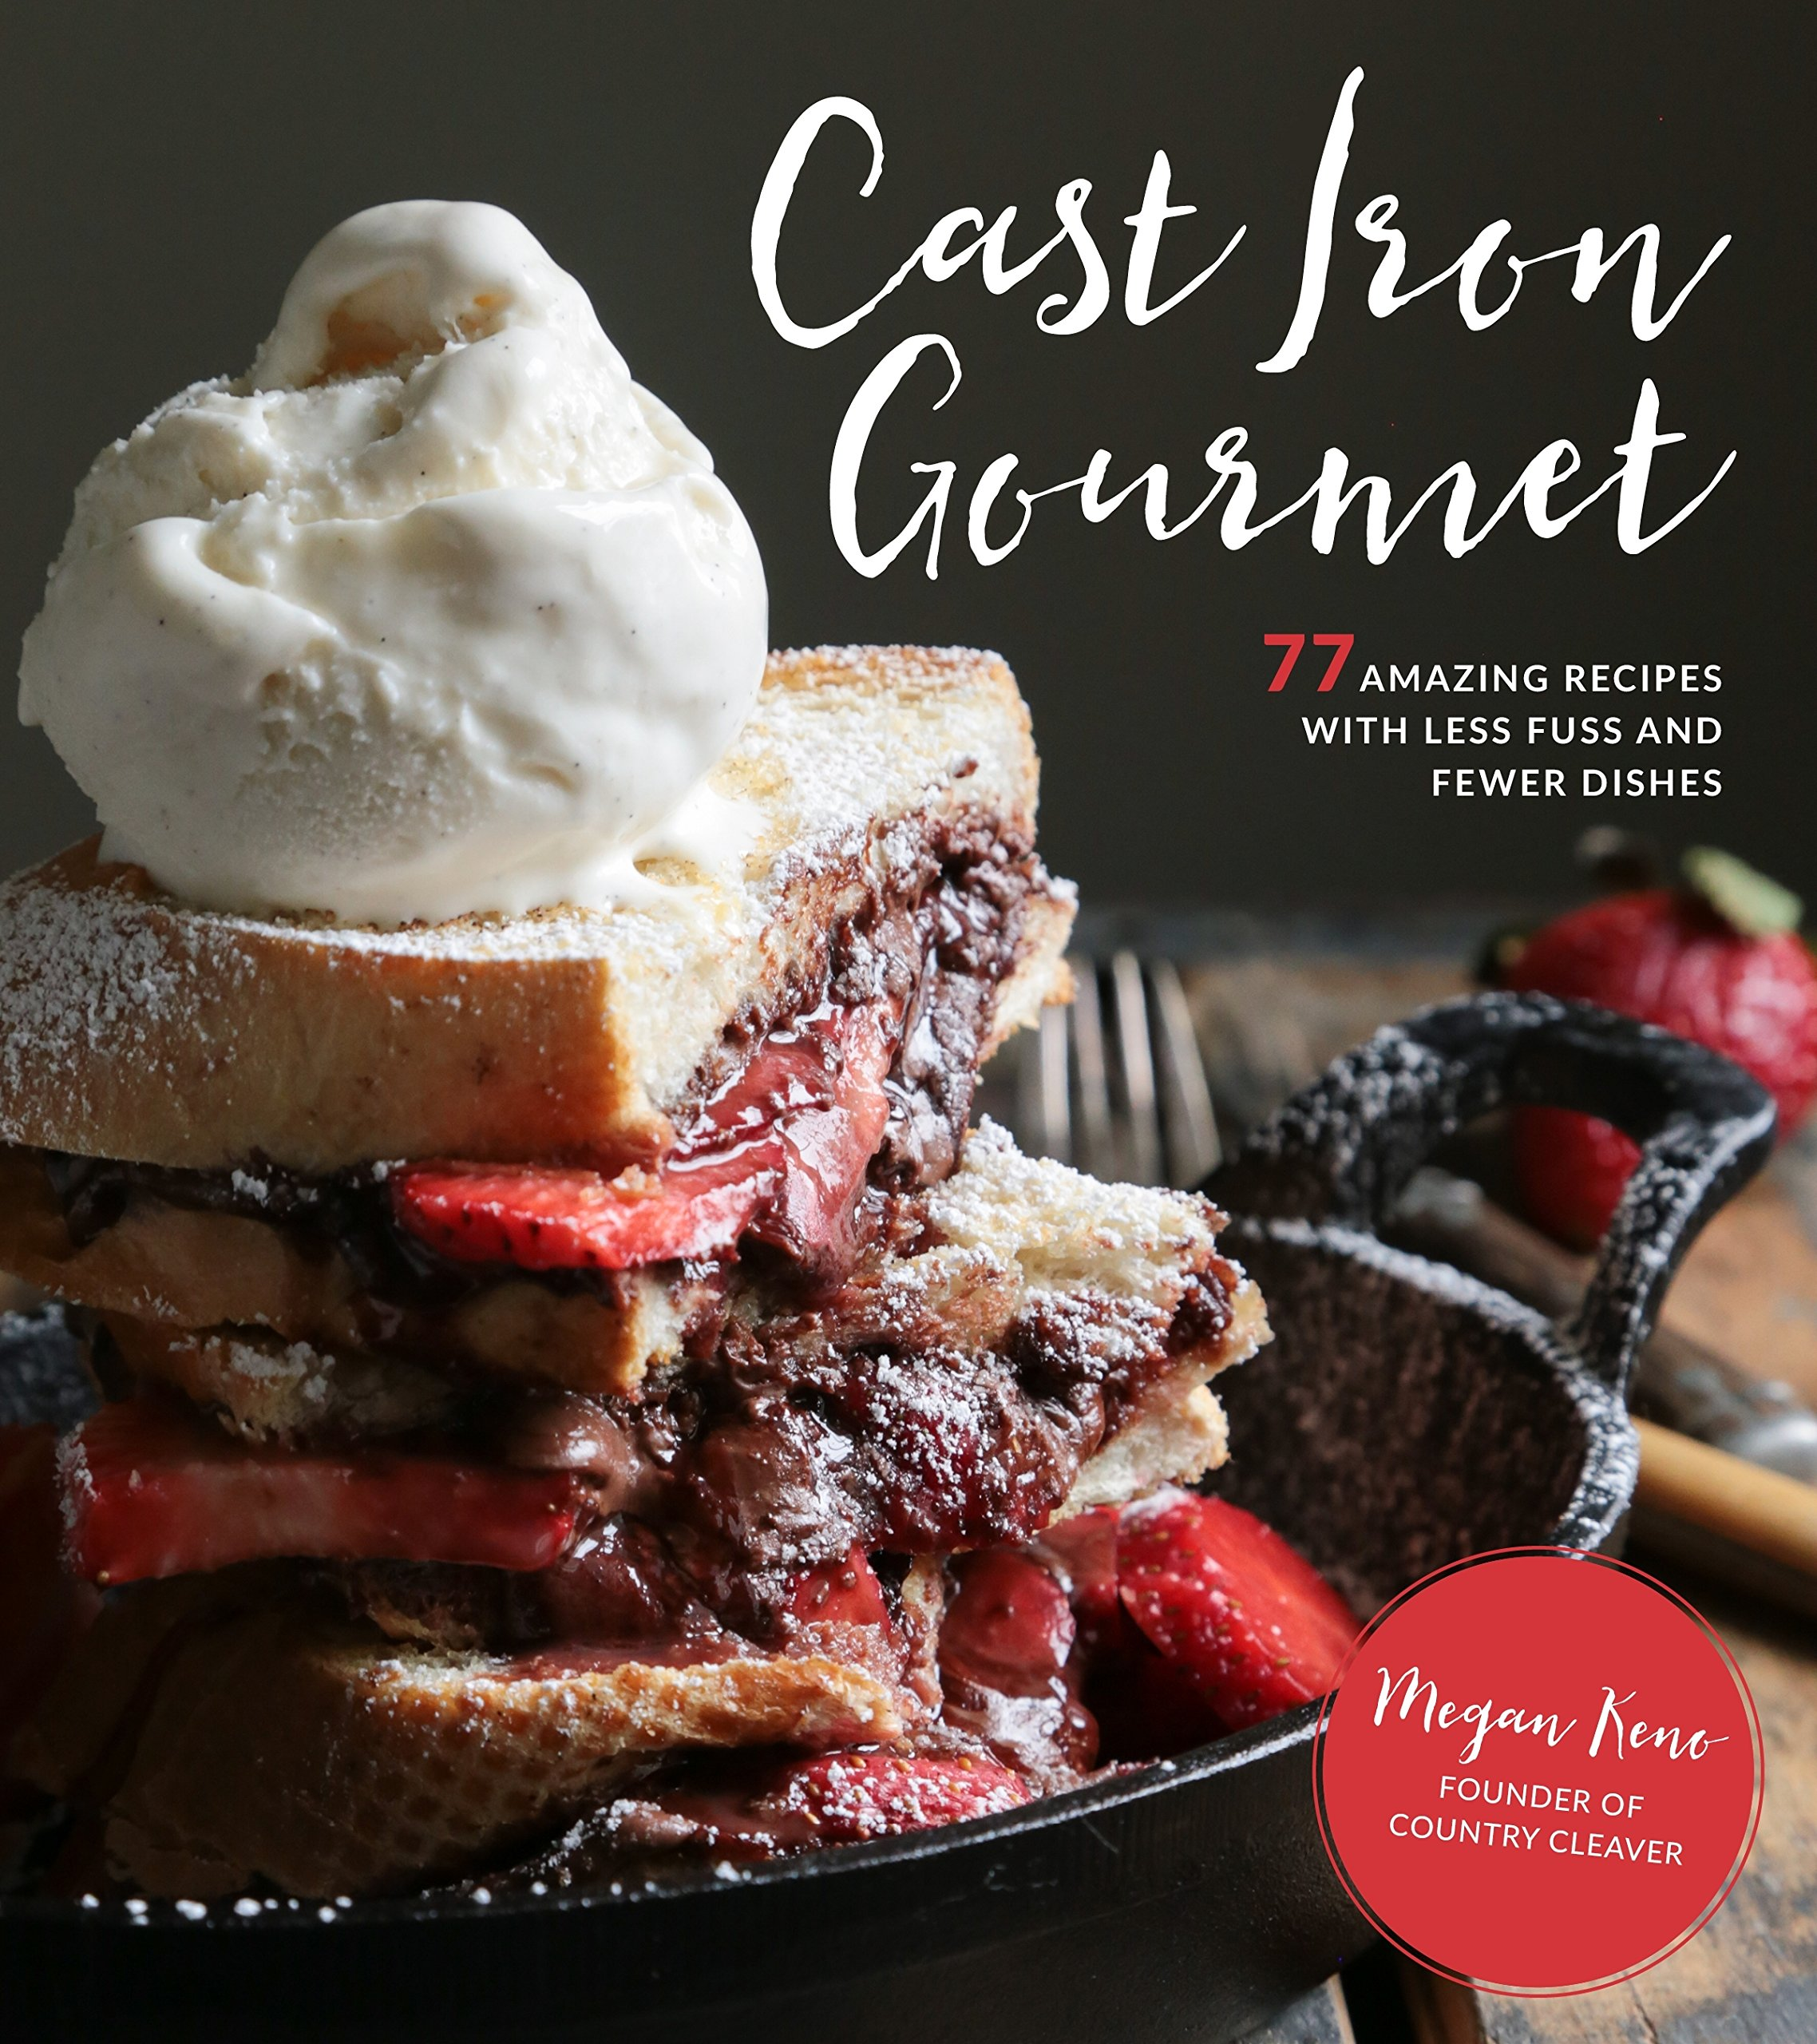 Cast Iron Gourmet: 77 Amazing Recipes with Less Fuss and Fewer Dishes Paperback – August 29, 2017 Megan Keno Page Street Publishing 1624144128 Methods - Special Appliances